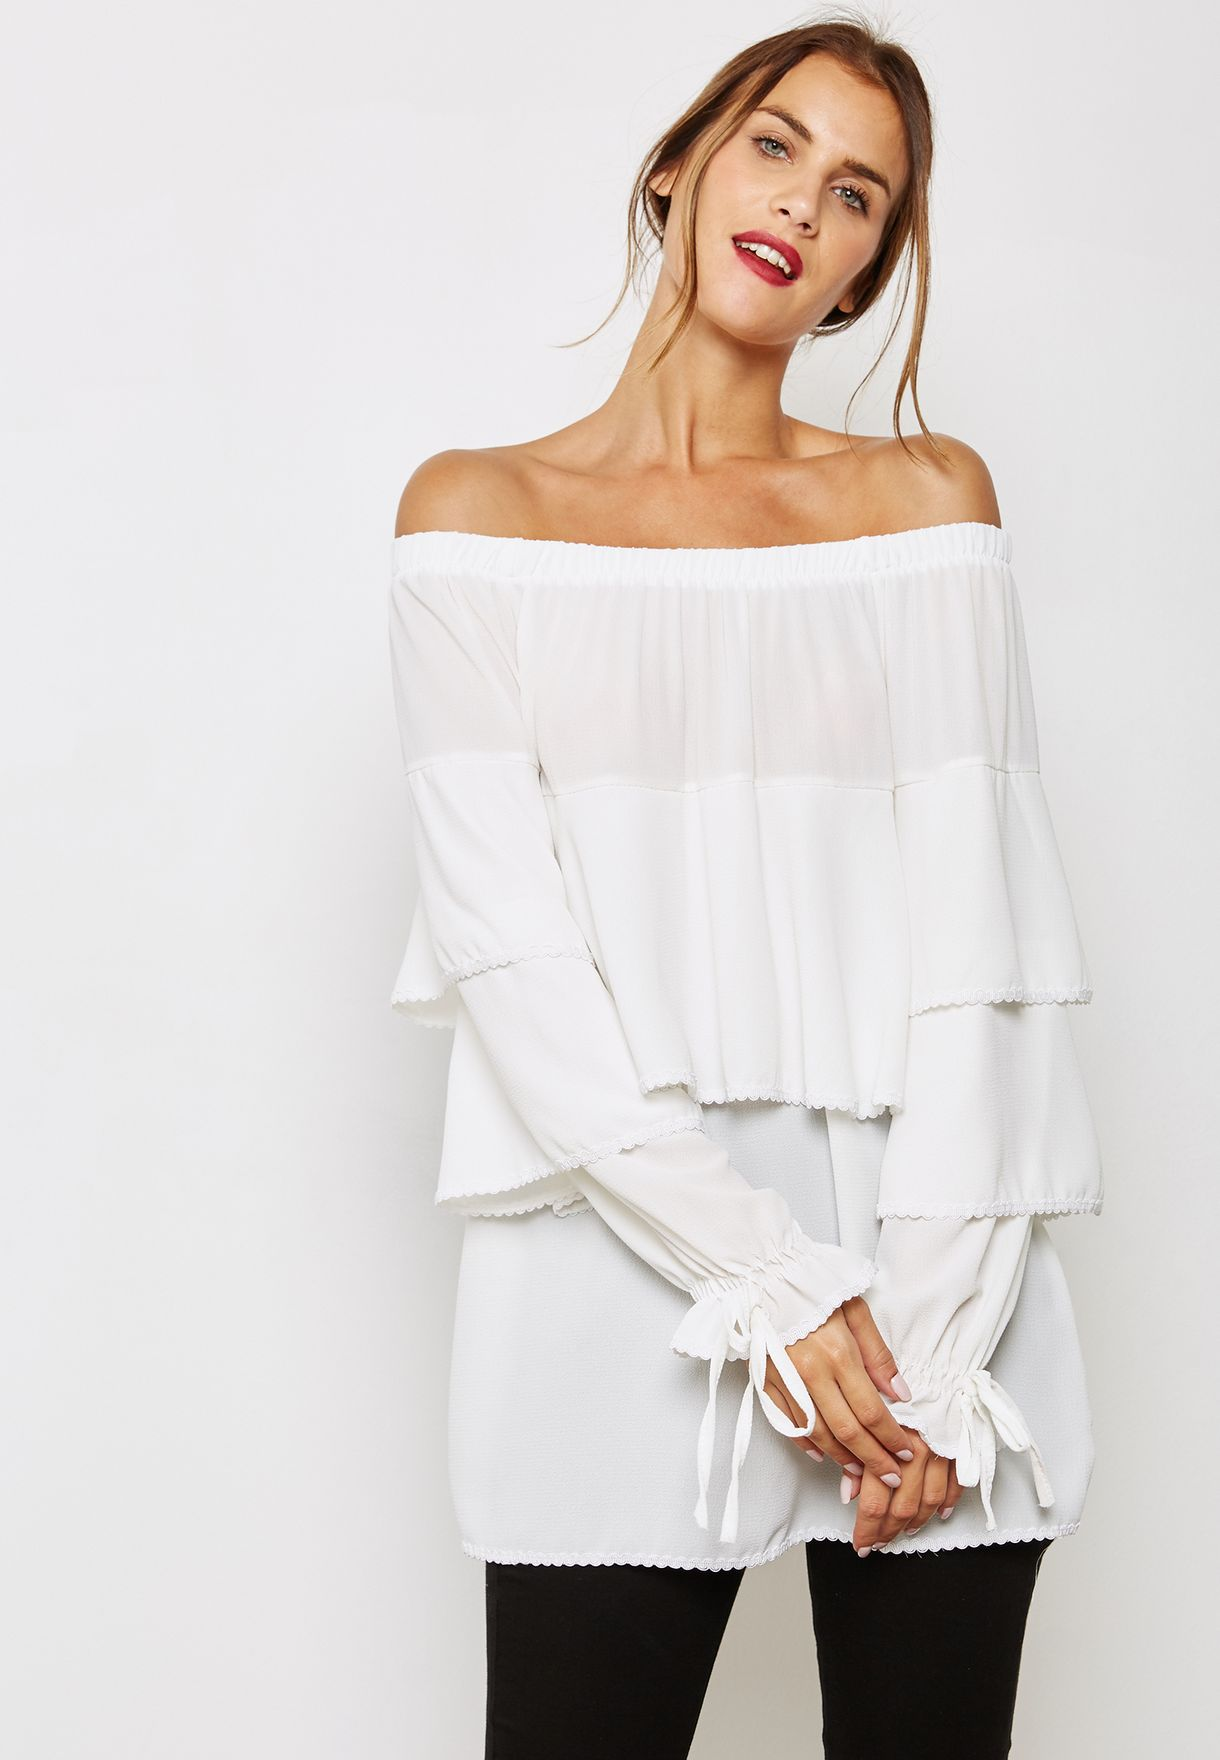 c330a970828a7c Shop Ginger white Tie Sleeve Ruffle Bardot Top SW1 for Women in ...